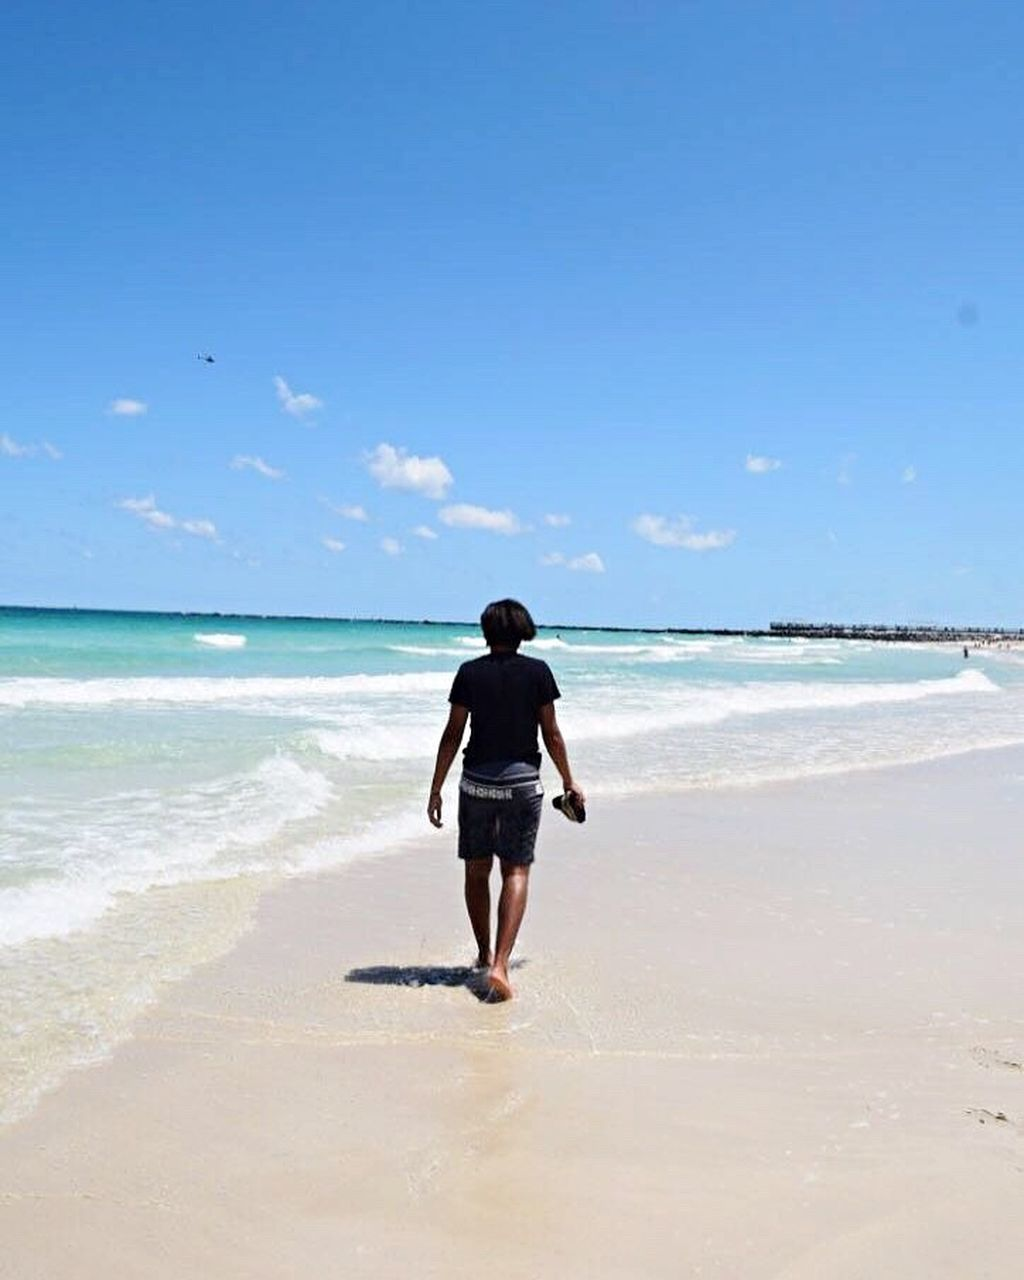 sea, beach, full length, horizon over water, rear view, nature, one person, sky, beauty in nature, scenics, sand, water, day, tranquility, vacations, standing, outdoors, wave, blue, ankle deep in water, real people, young adult, one man only, adult, adults only, people